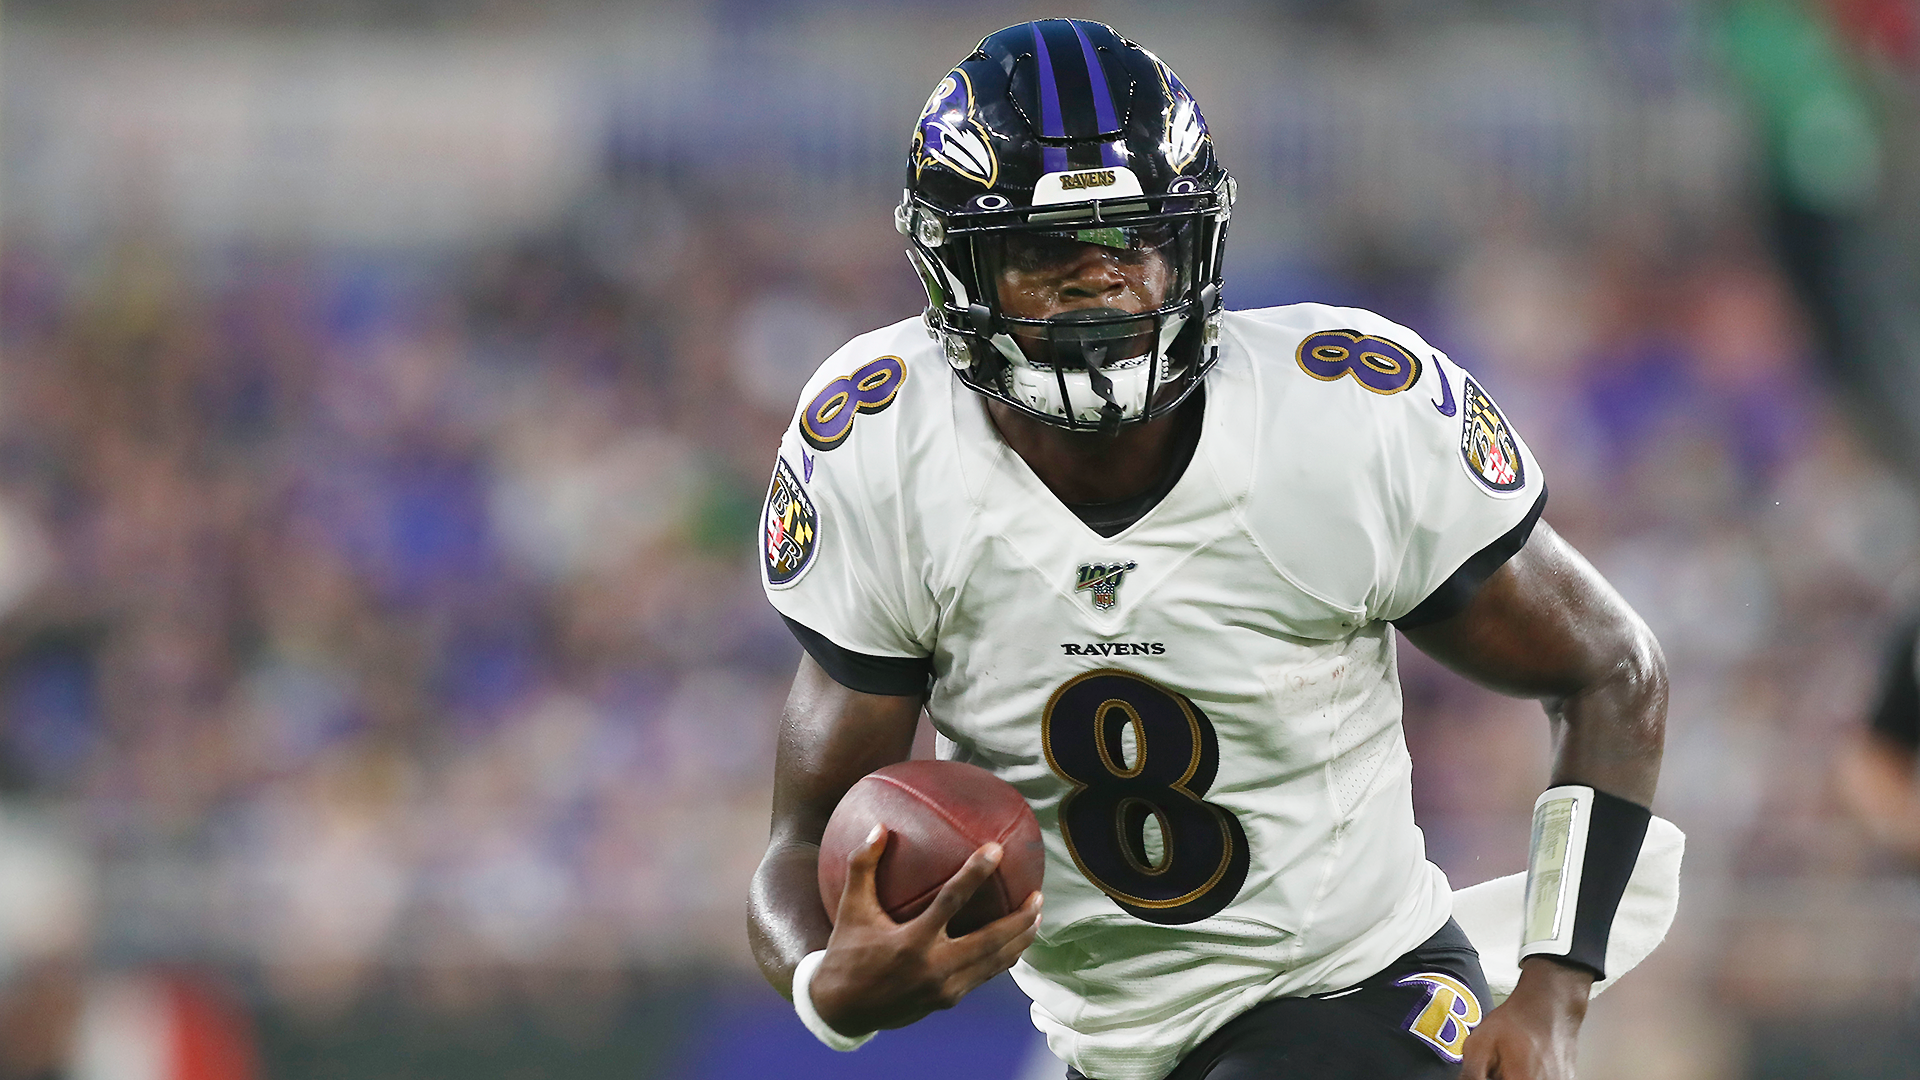 How exactly do the Ravens plan to use Lamar Jackson in 2019?